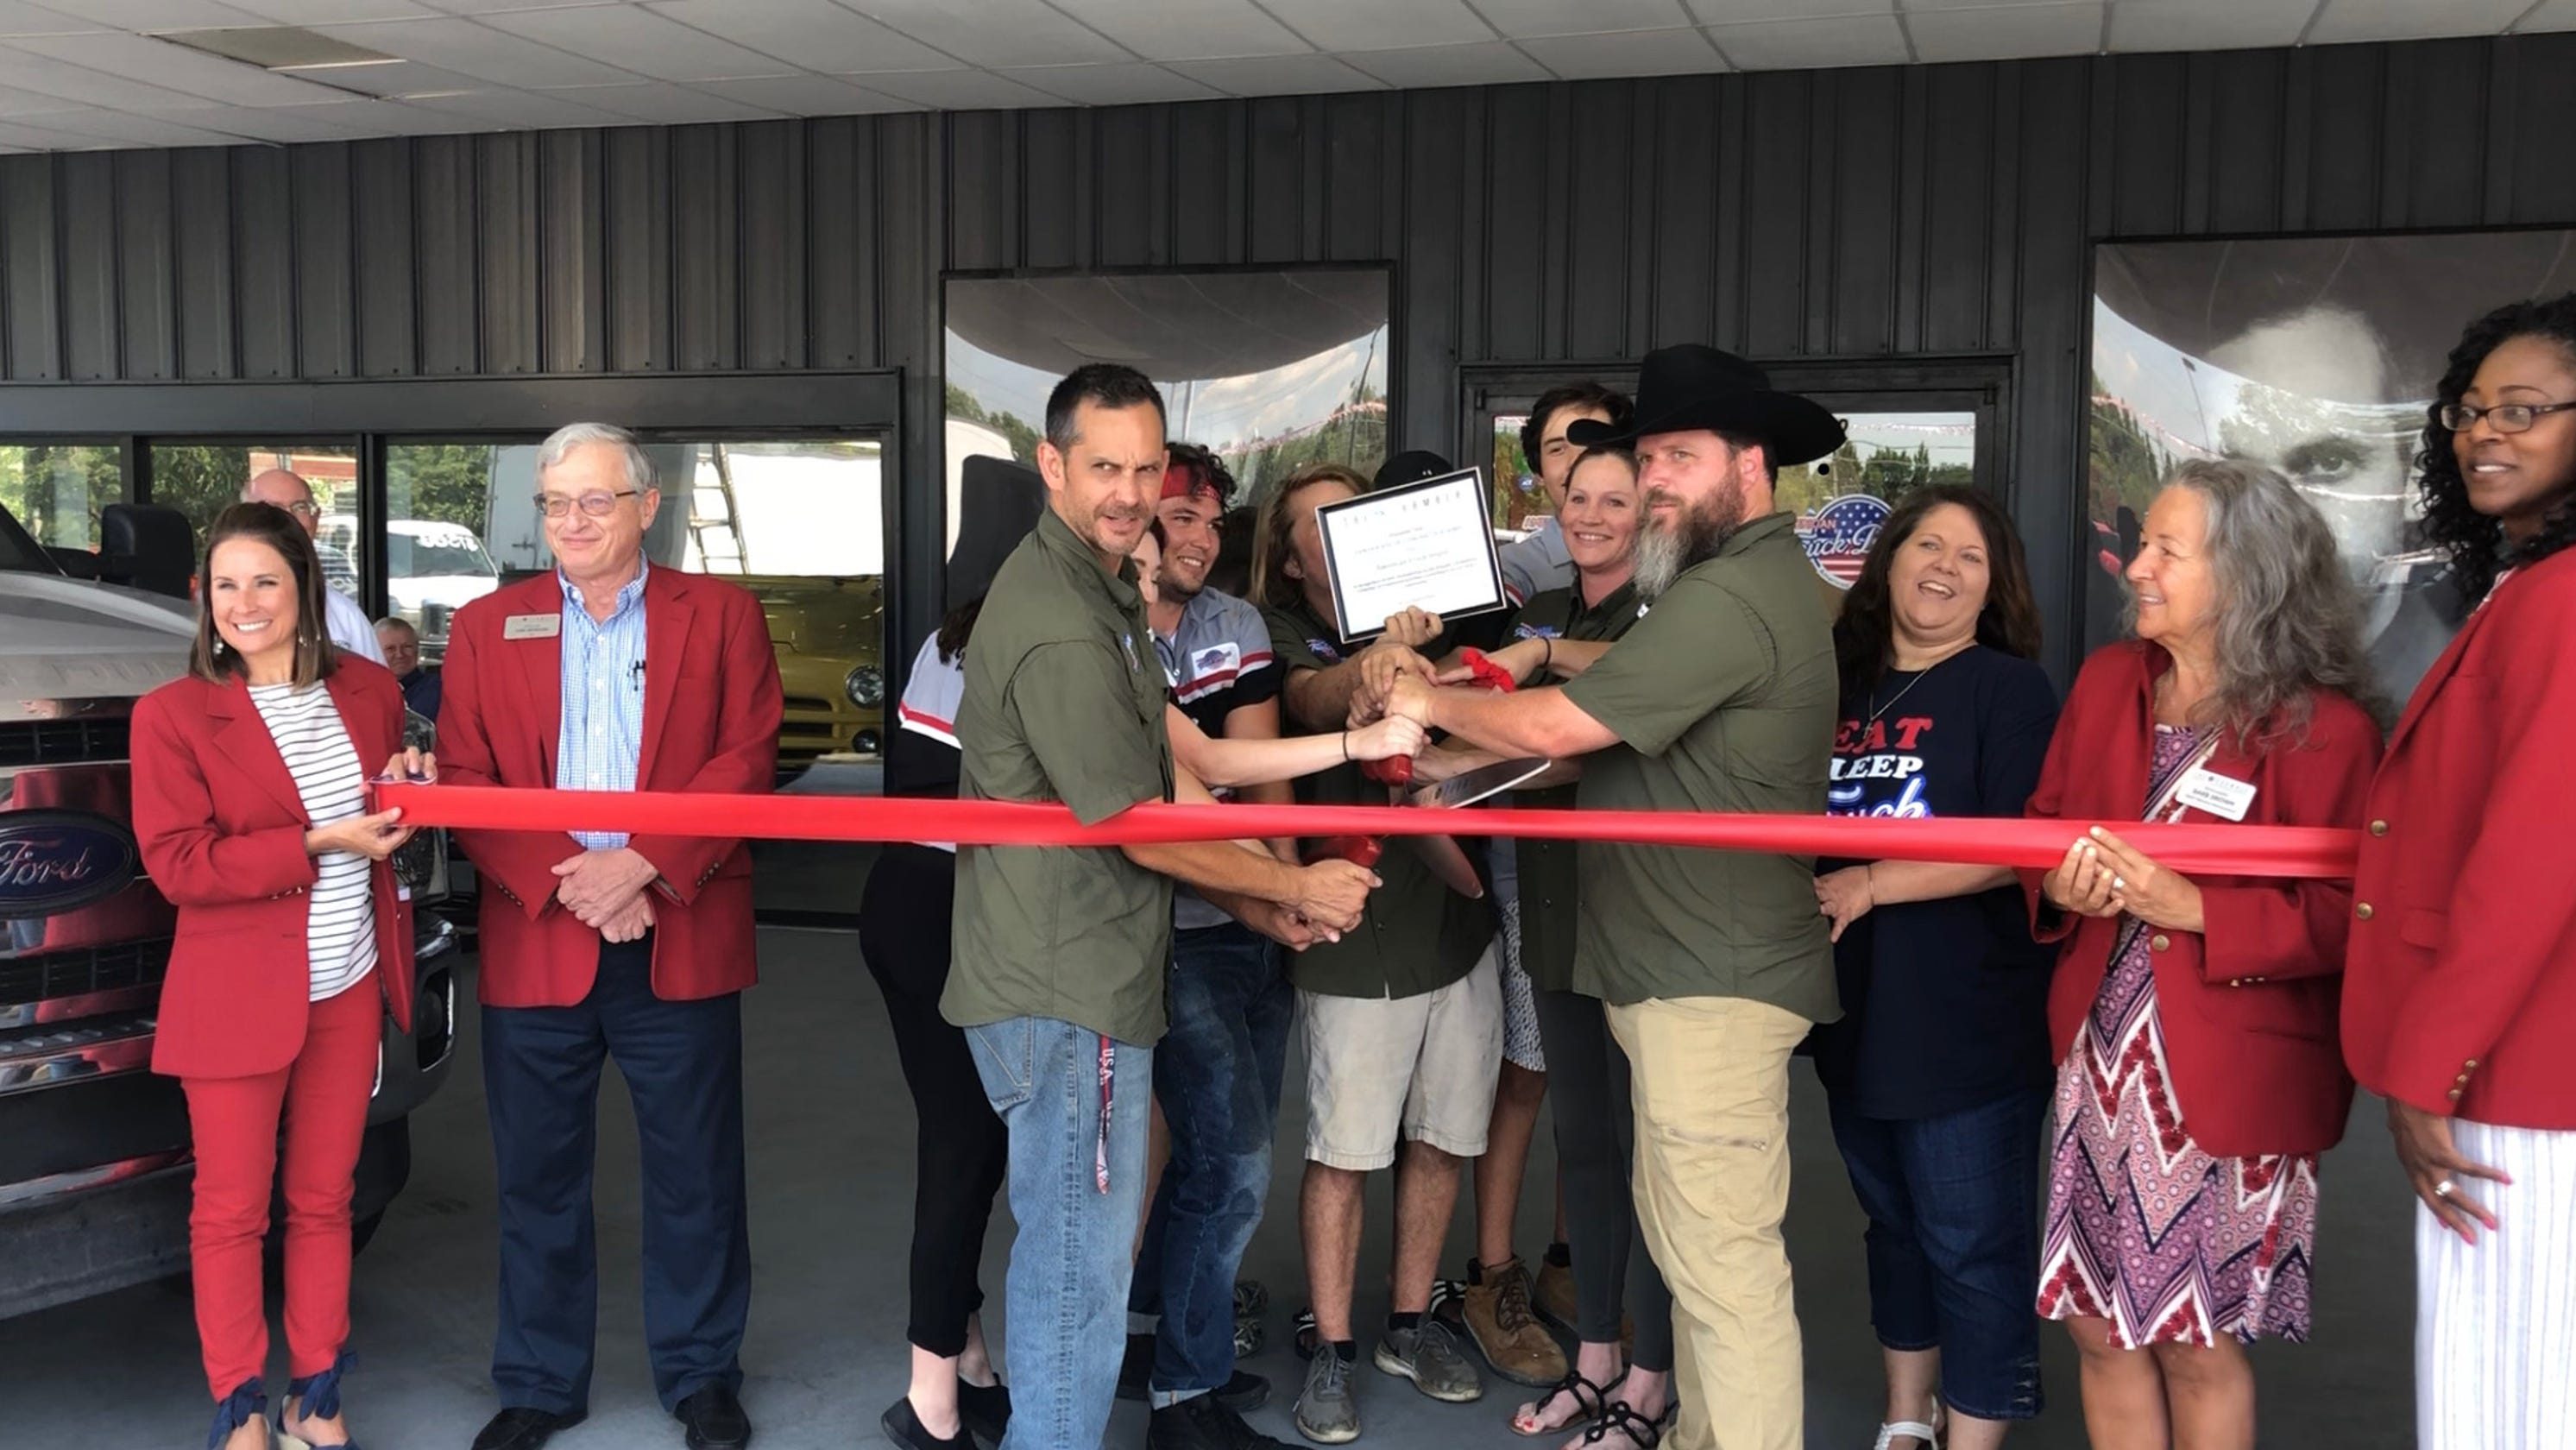 American Truck Depot opens with Prius raffle, commitment to